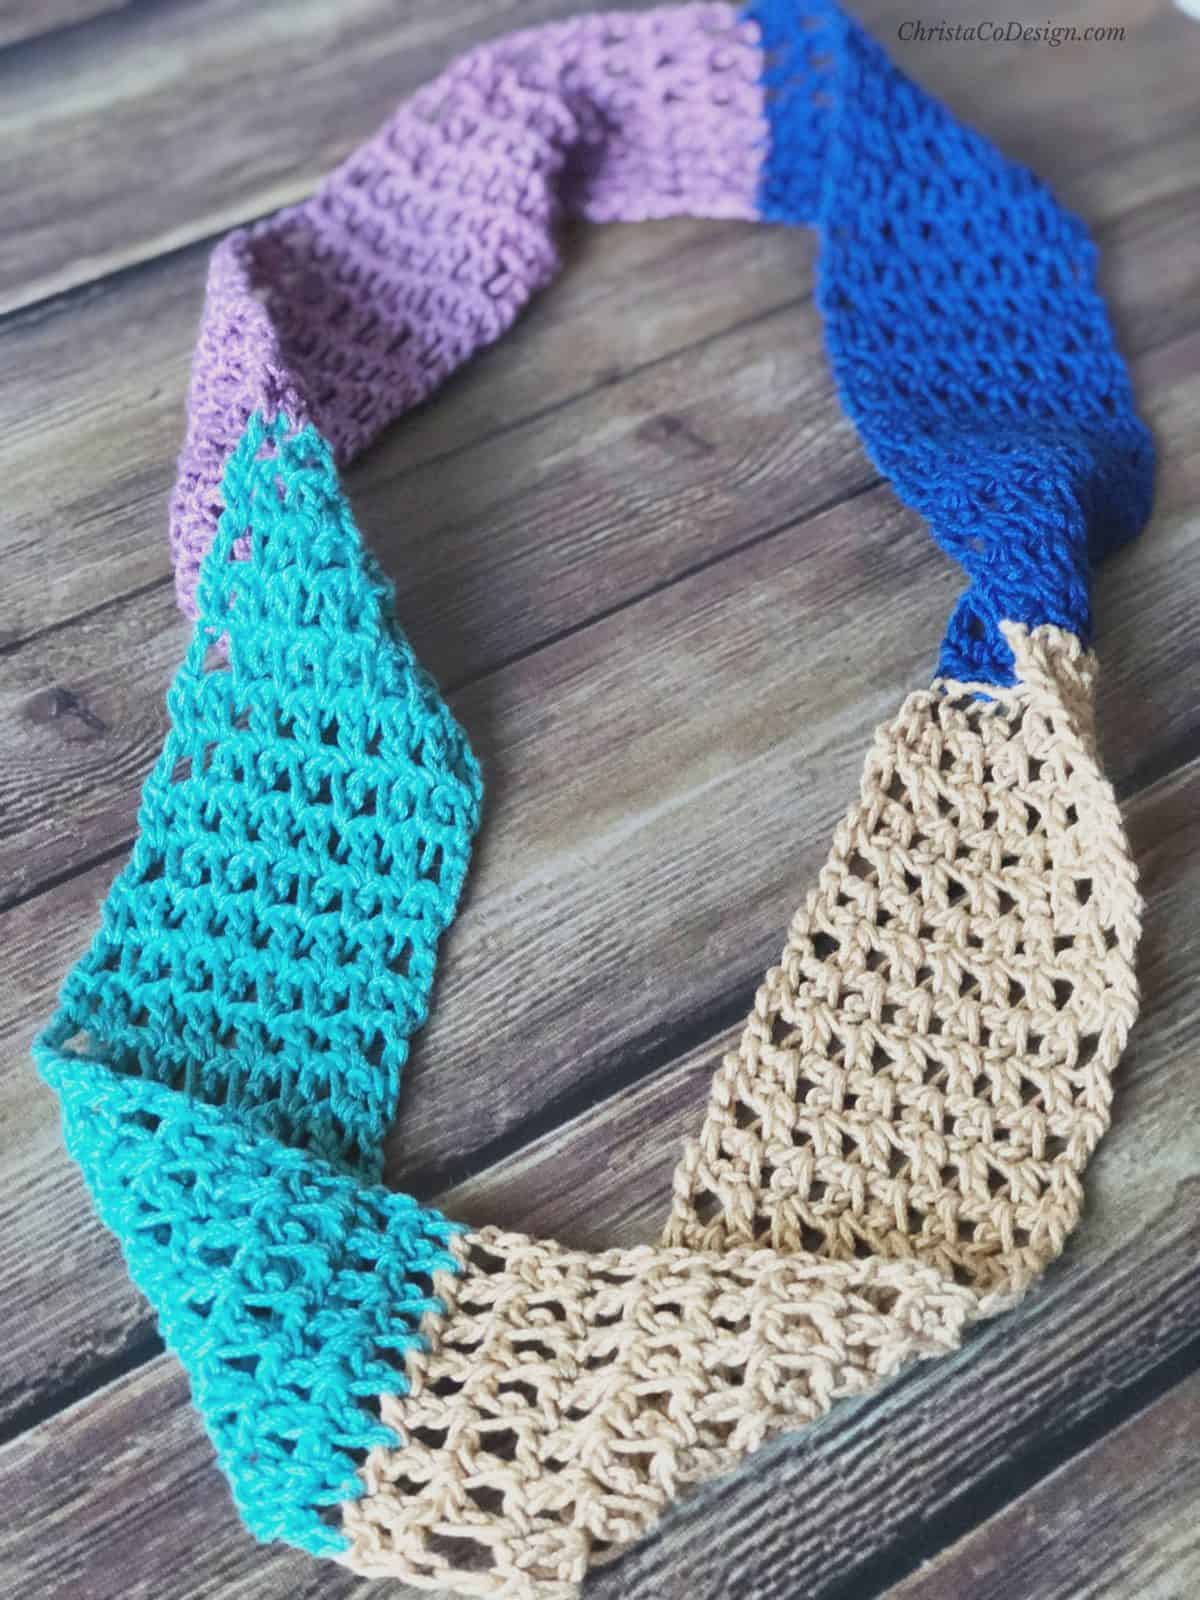 Laid flat: lacy crochet cowl with four colors.